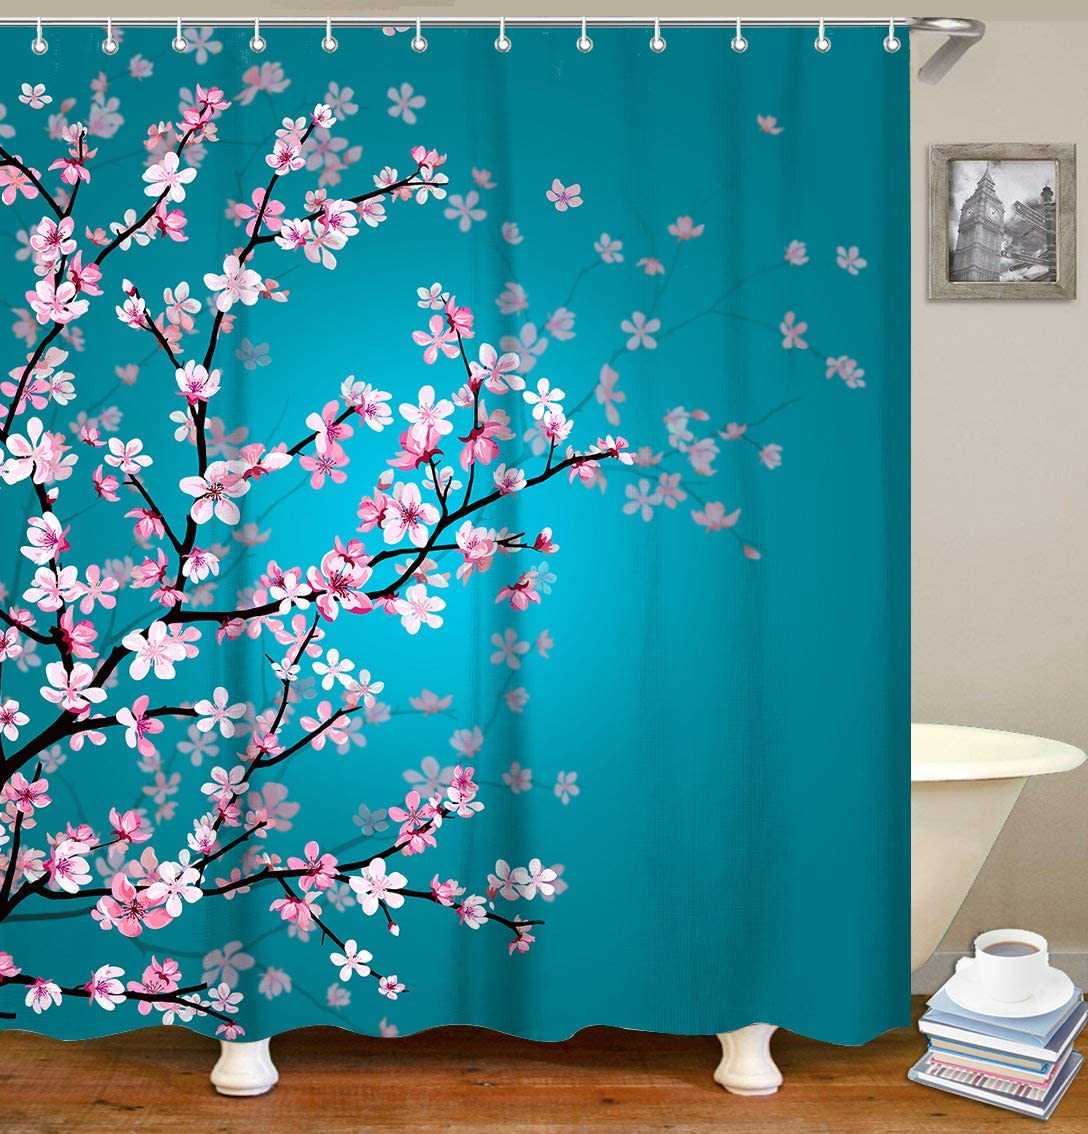 "LIVILAN Cherry Blossom Shower Curtain, Floral Teal Fabric Sakura Plum Blossom Bath Curtains with 12 Hooks Bathroom Decor 70.8"" X 70.8"", Turquoise"